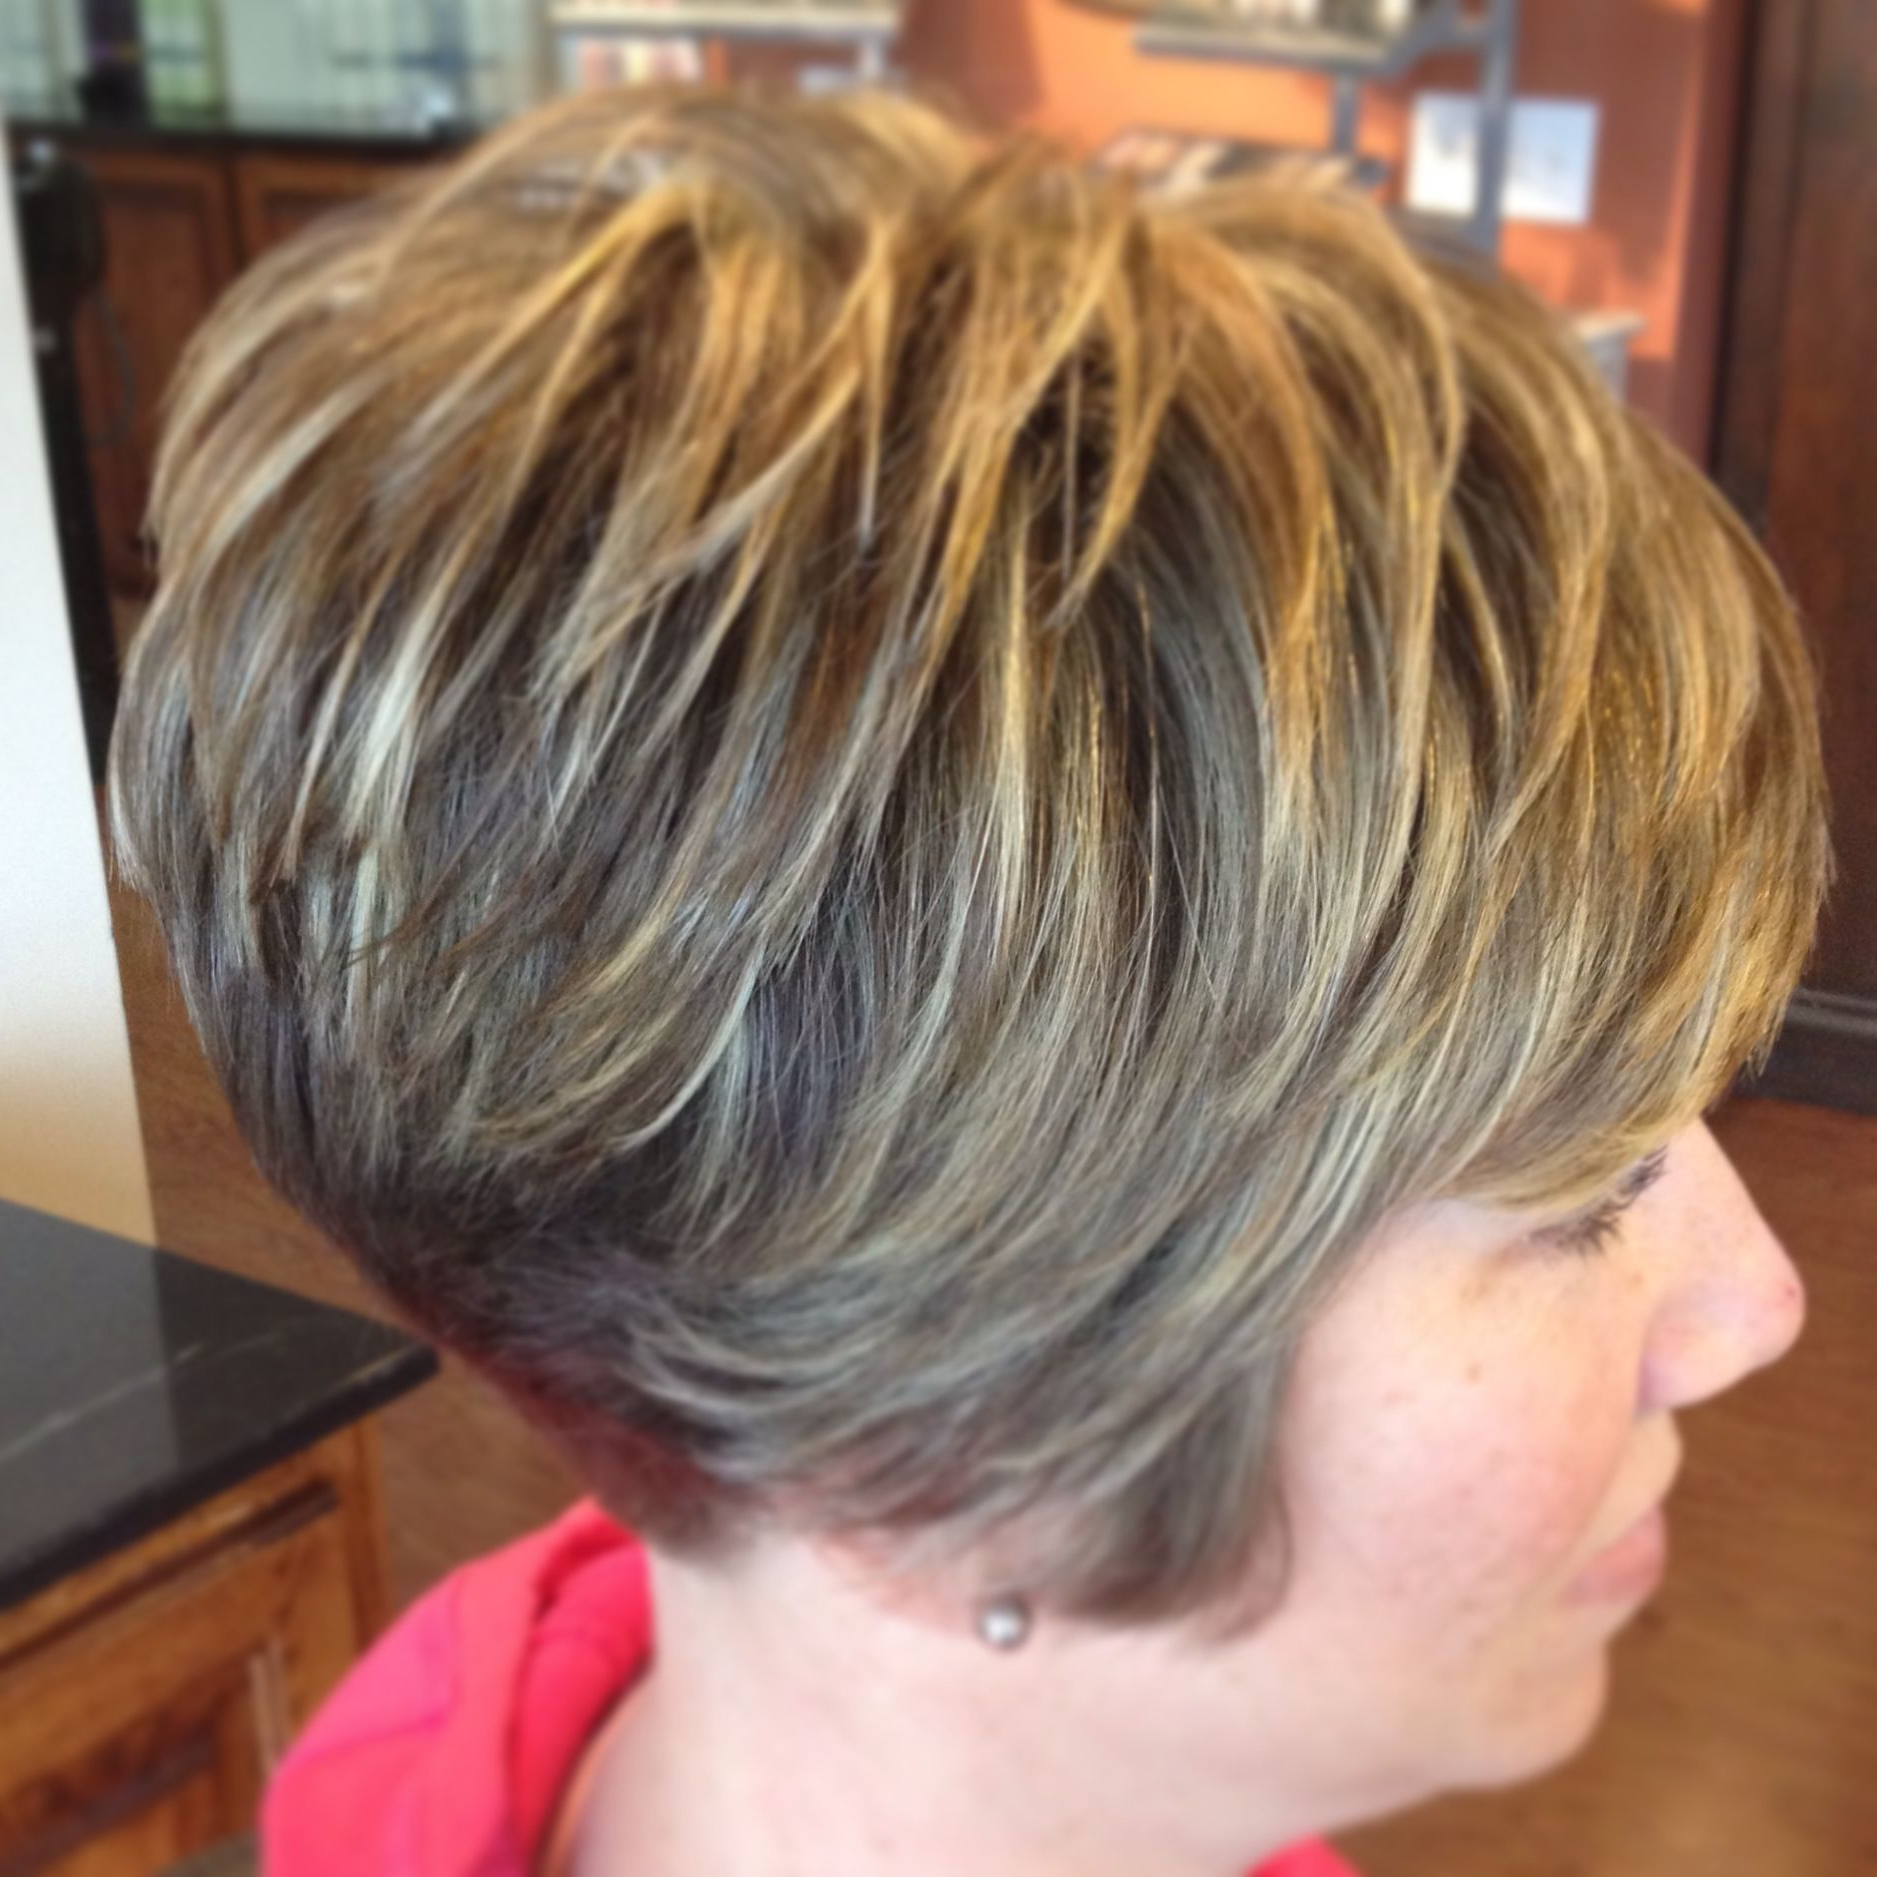 Pin On Designs ~ Short Throughout Short Highlighted Shaggy Haircuts (View 6 of 20)